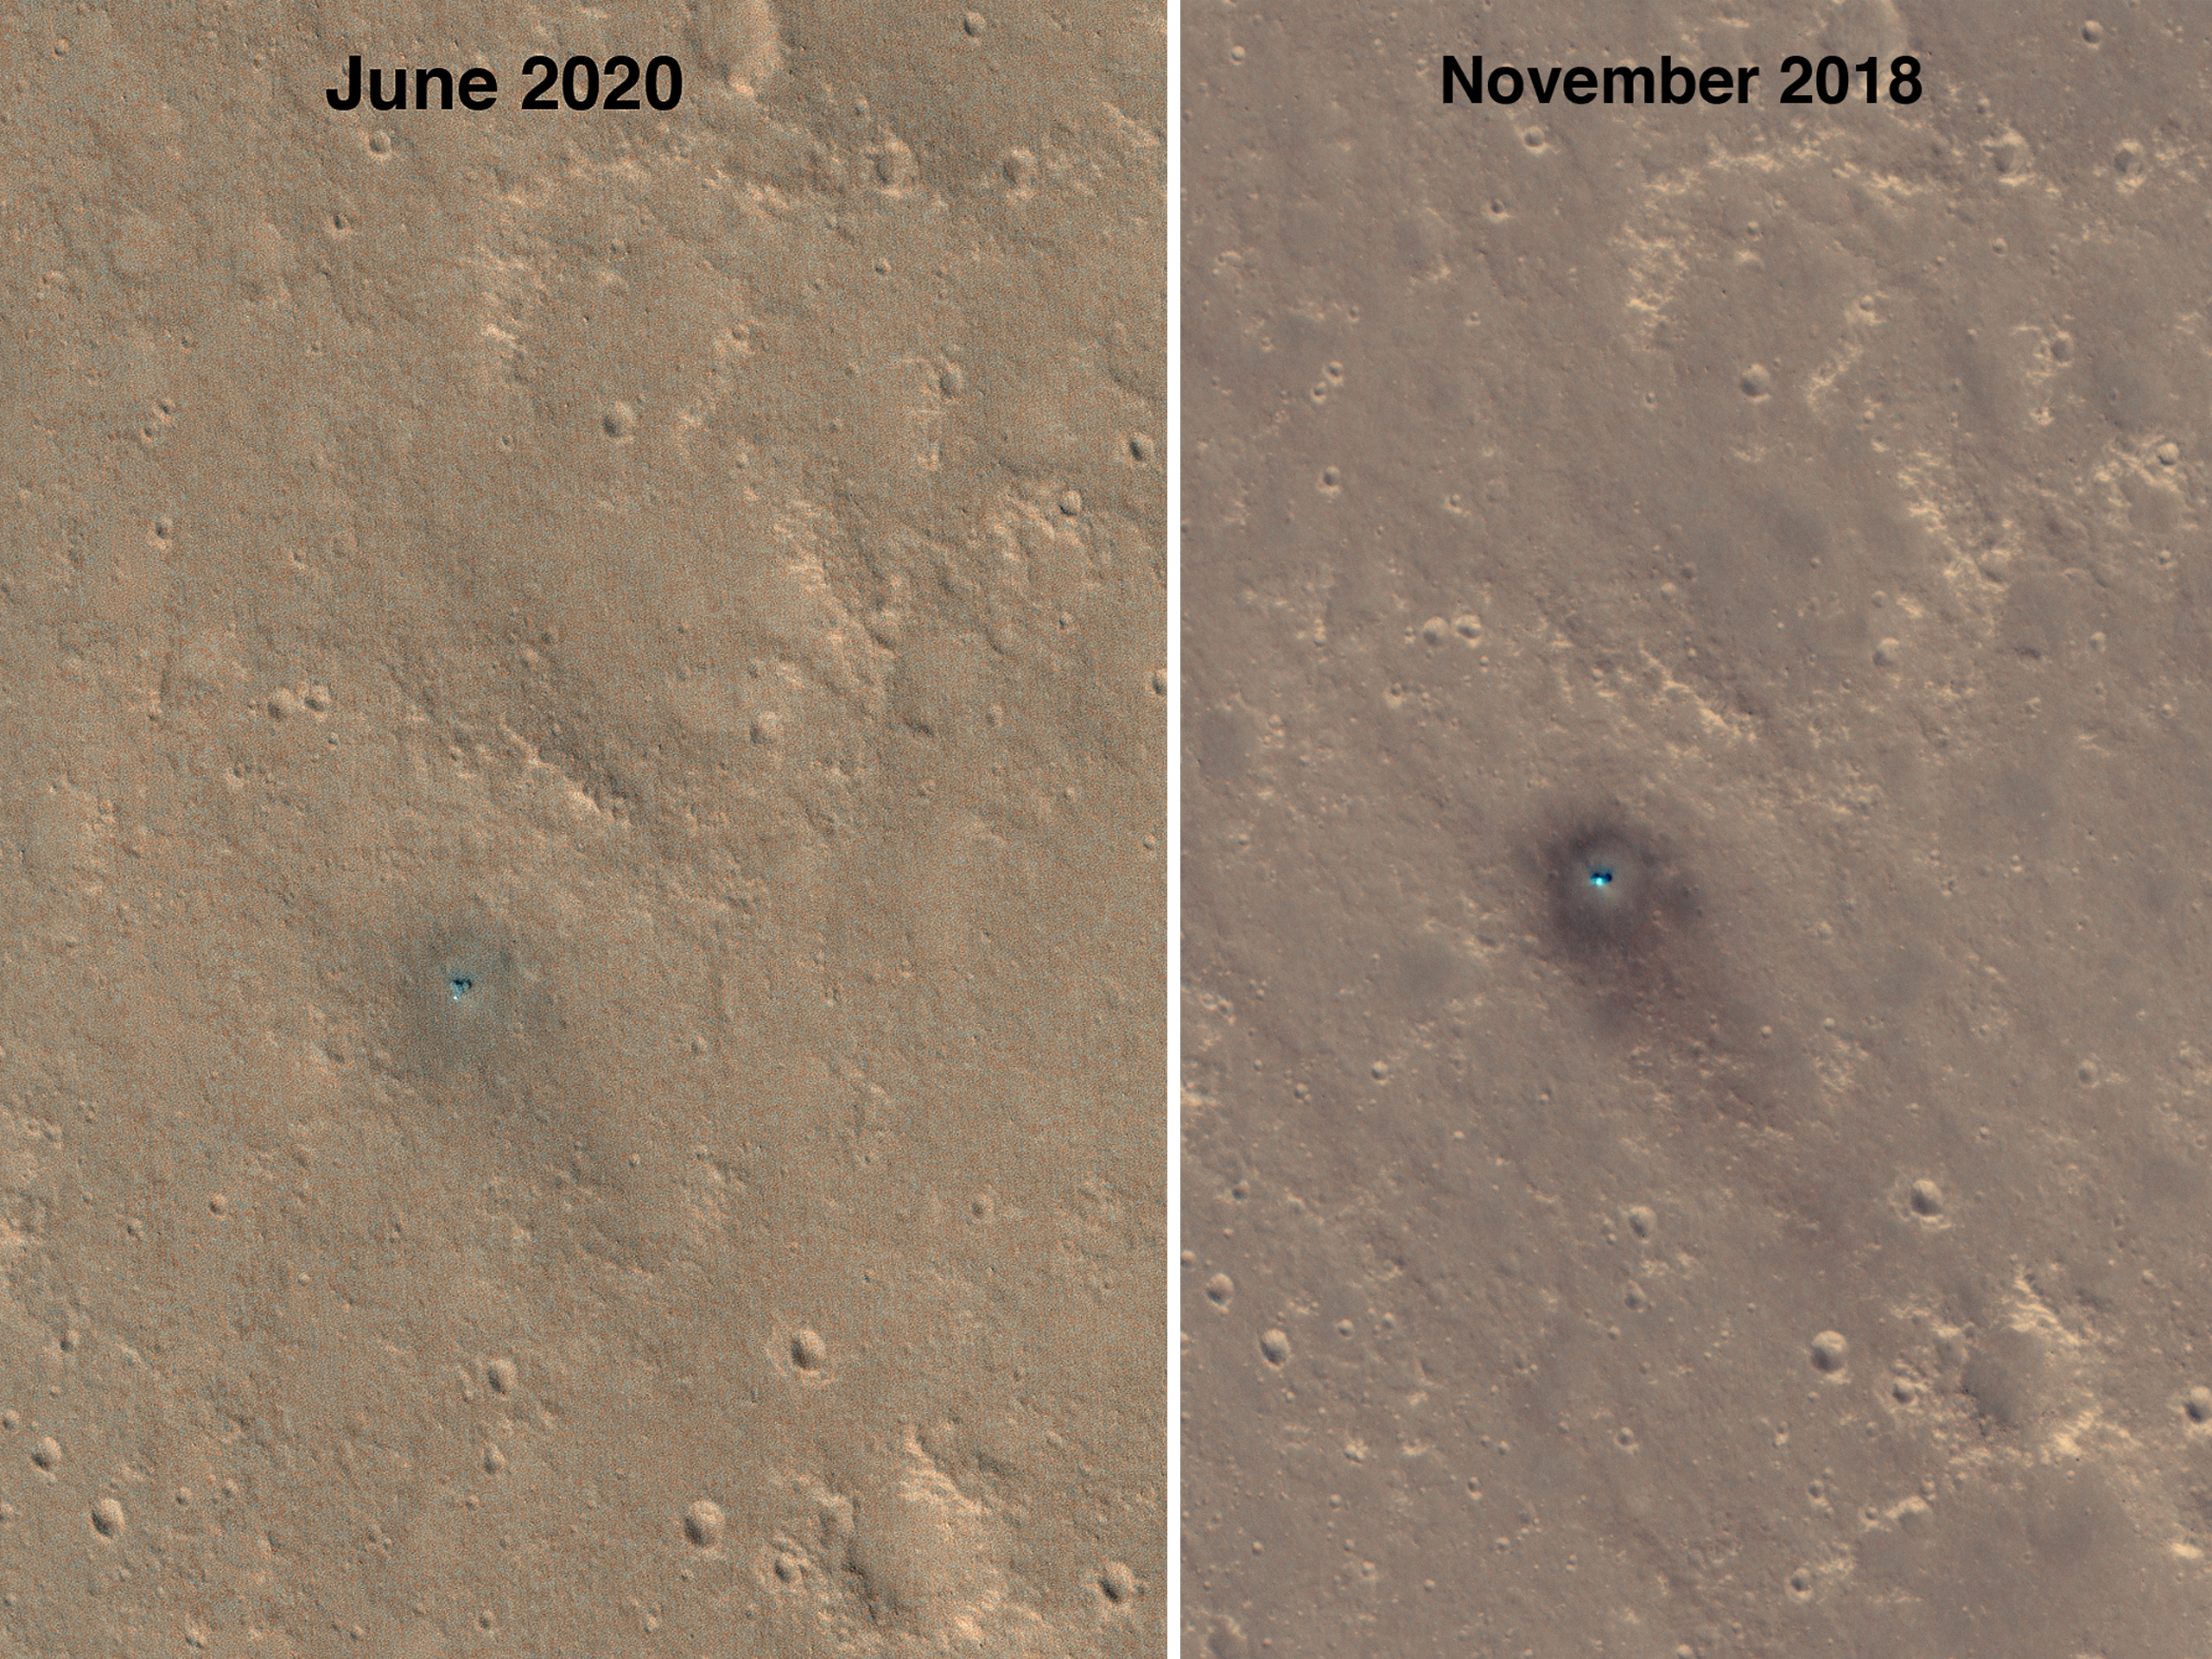 Fading Dark Spot at the InSight Landing Site